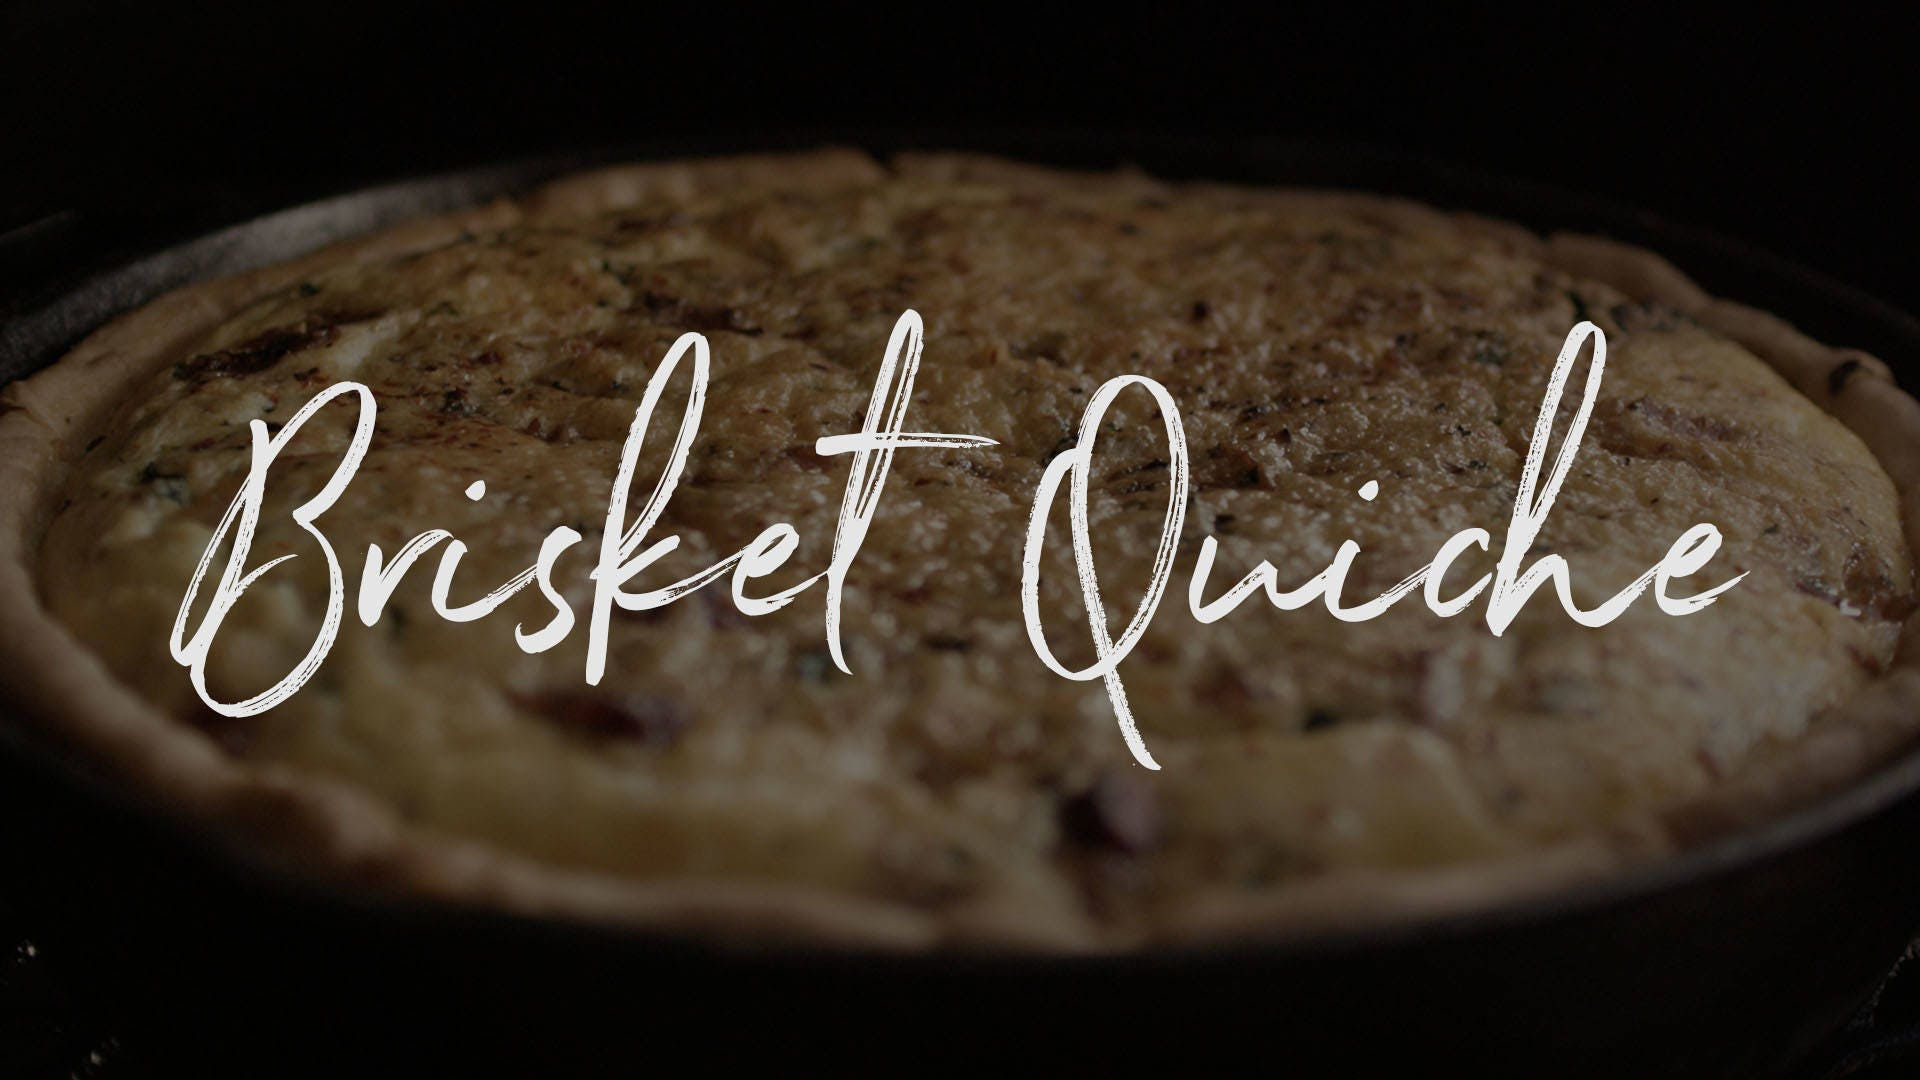 Brisket Quiche Recipe